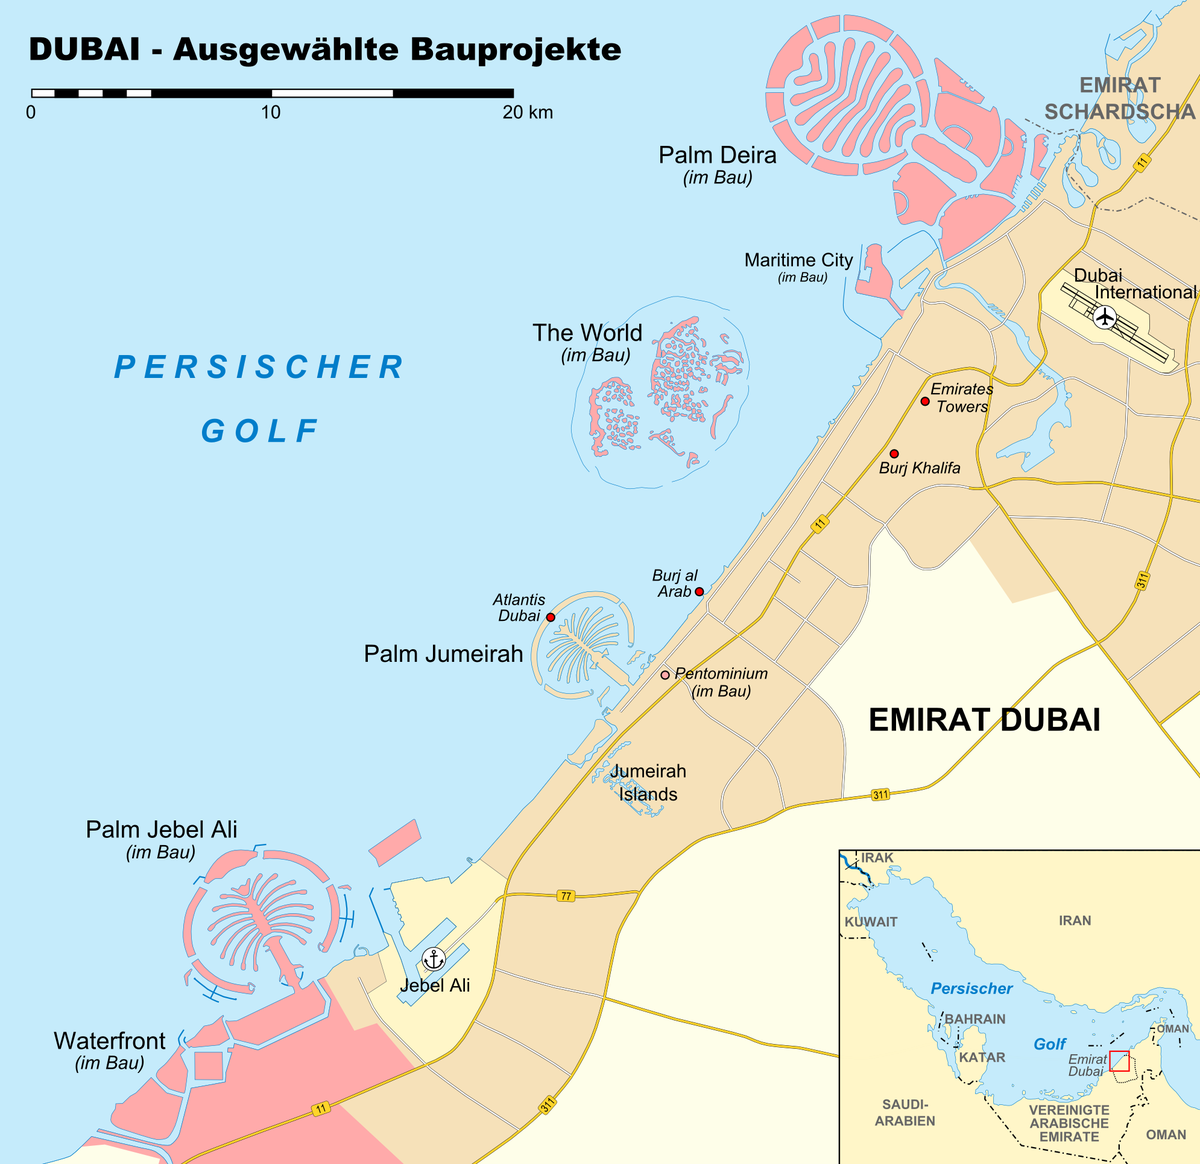 dubai weltkarte The World (Inselgruppe) – Wikipedia dubai weltkarte